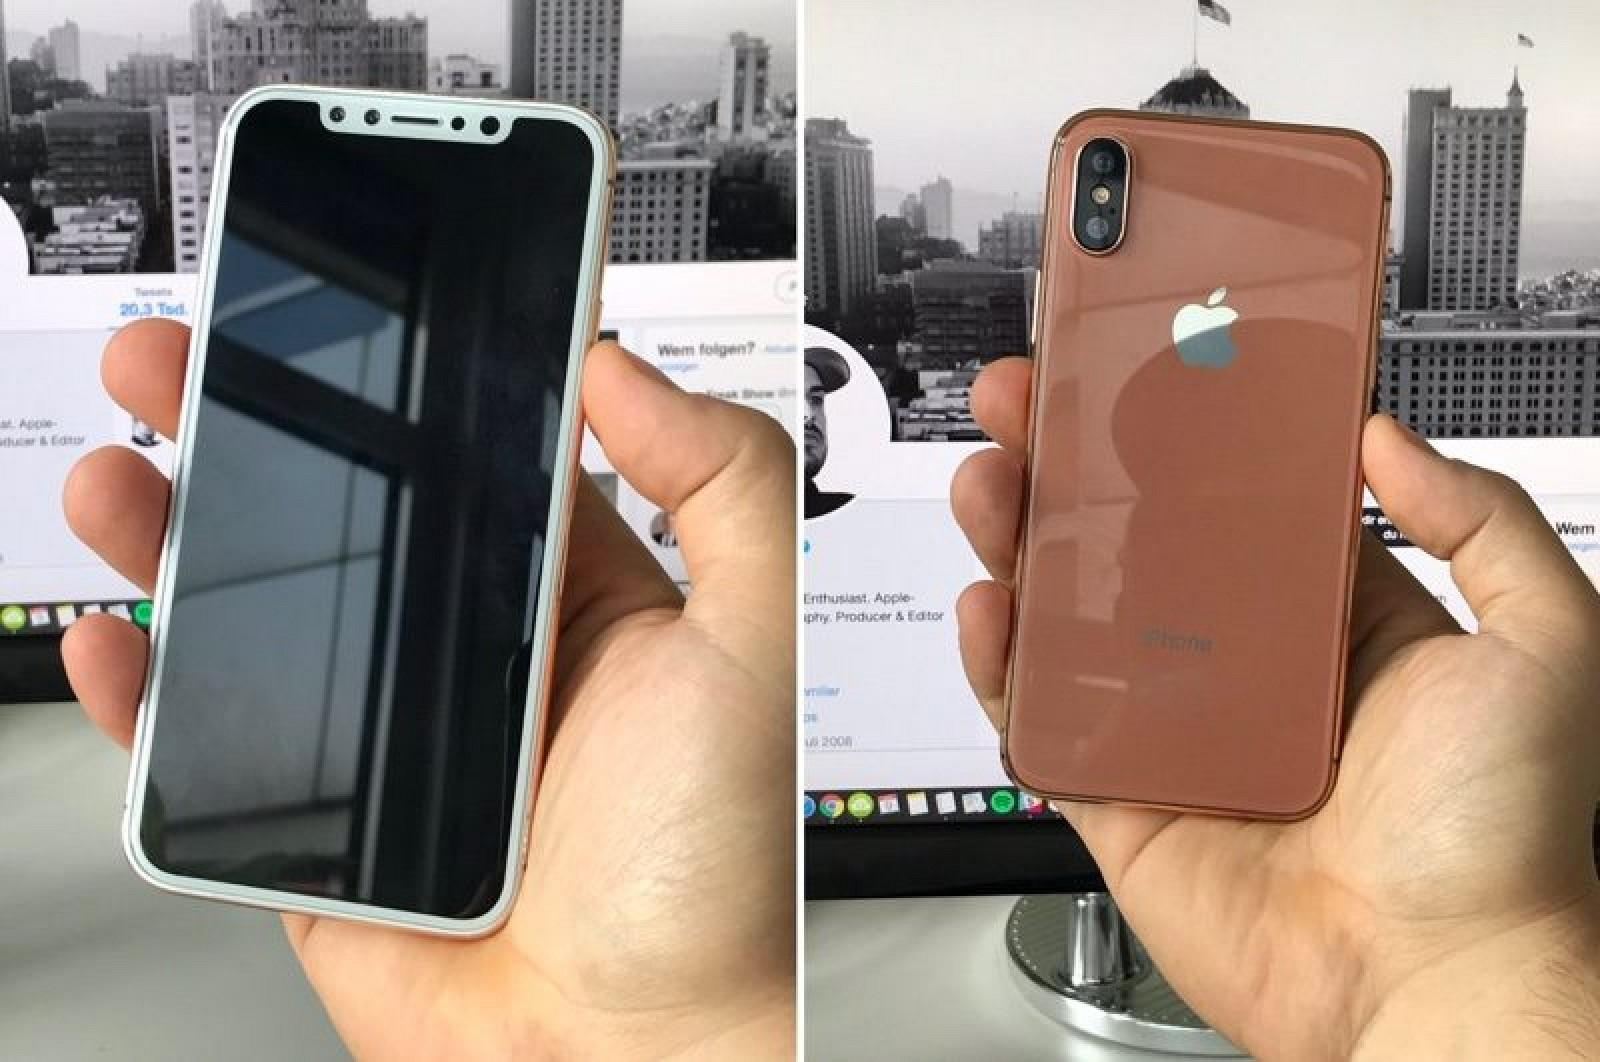 The iPhone 8 dummy